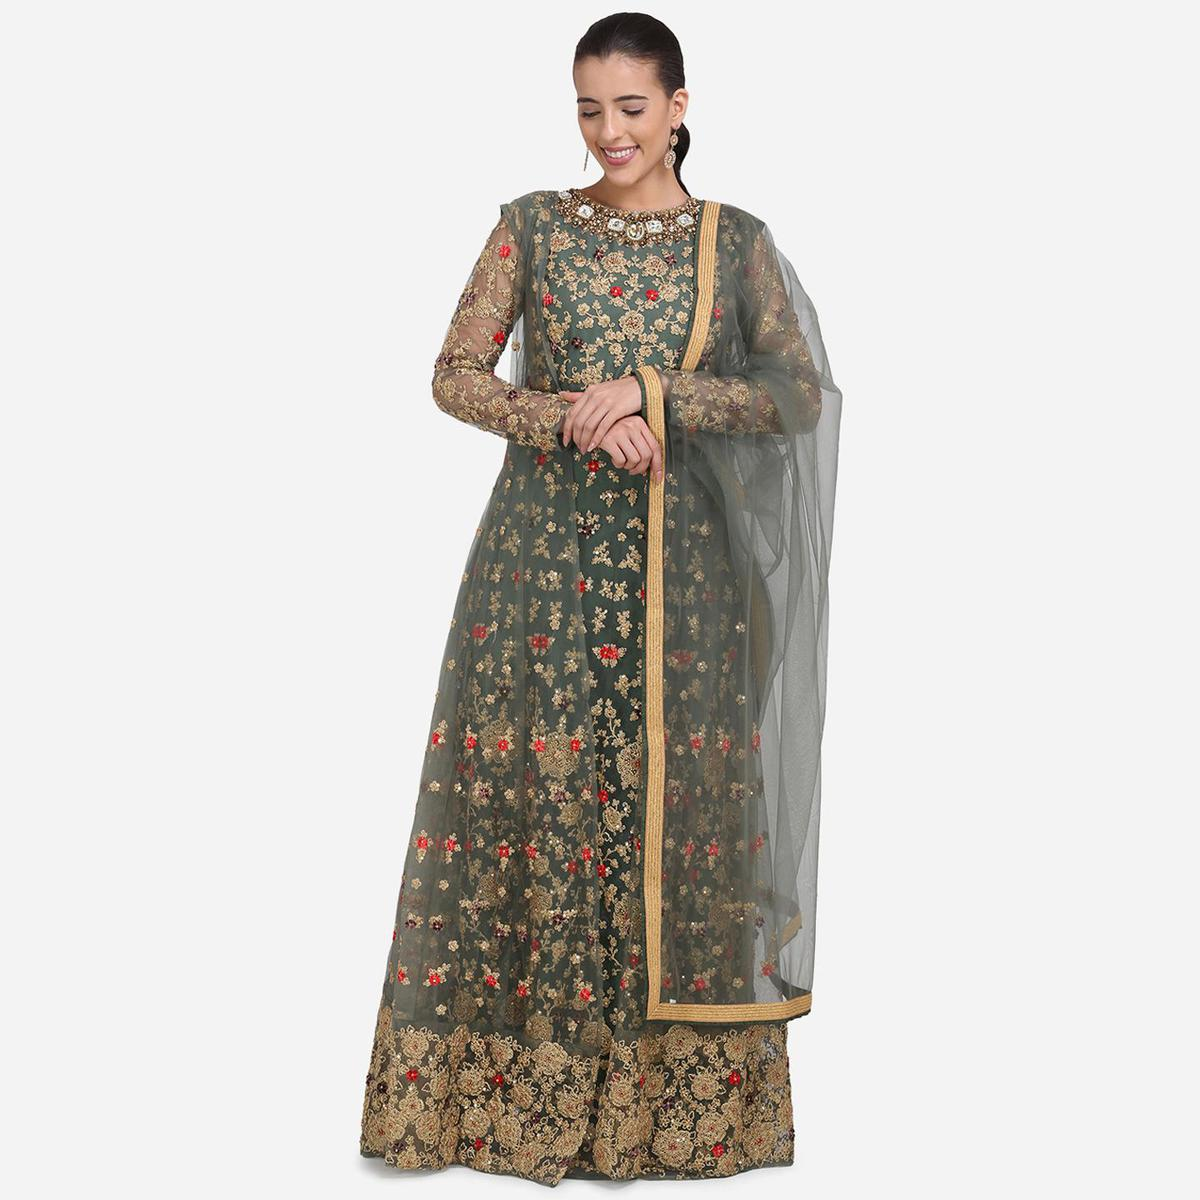 Stylee Lifestyle - Olive Green Colored Party Wear Embroidered Net Anarkali Suit